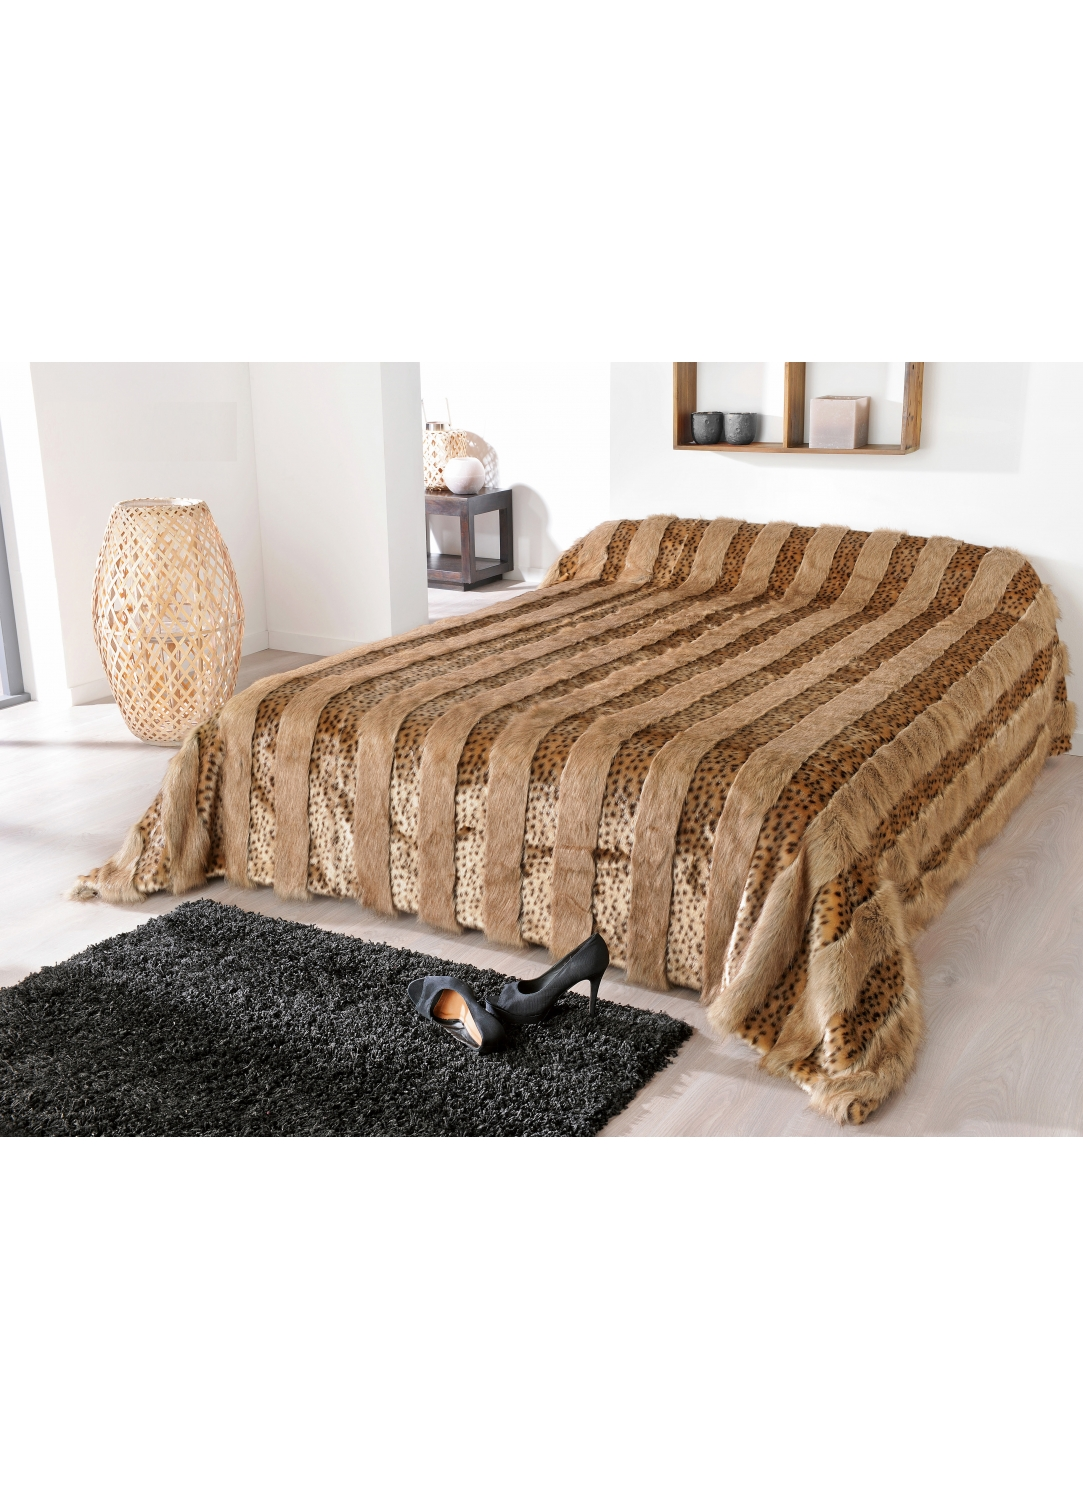 jet de lit en fausse fourrure lynx marron homemaison vente en ligne couvertures et plaids. Black Bedroom Furniture Sets. Home Design Ideas